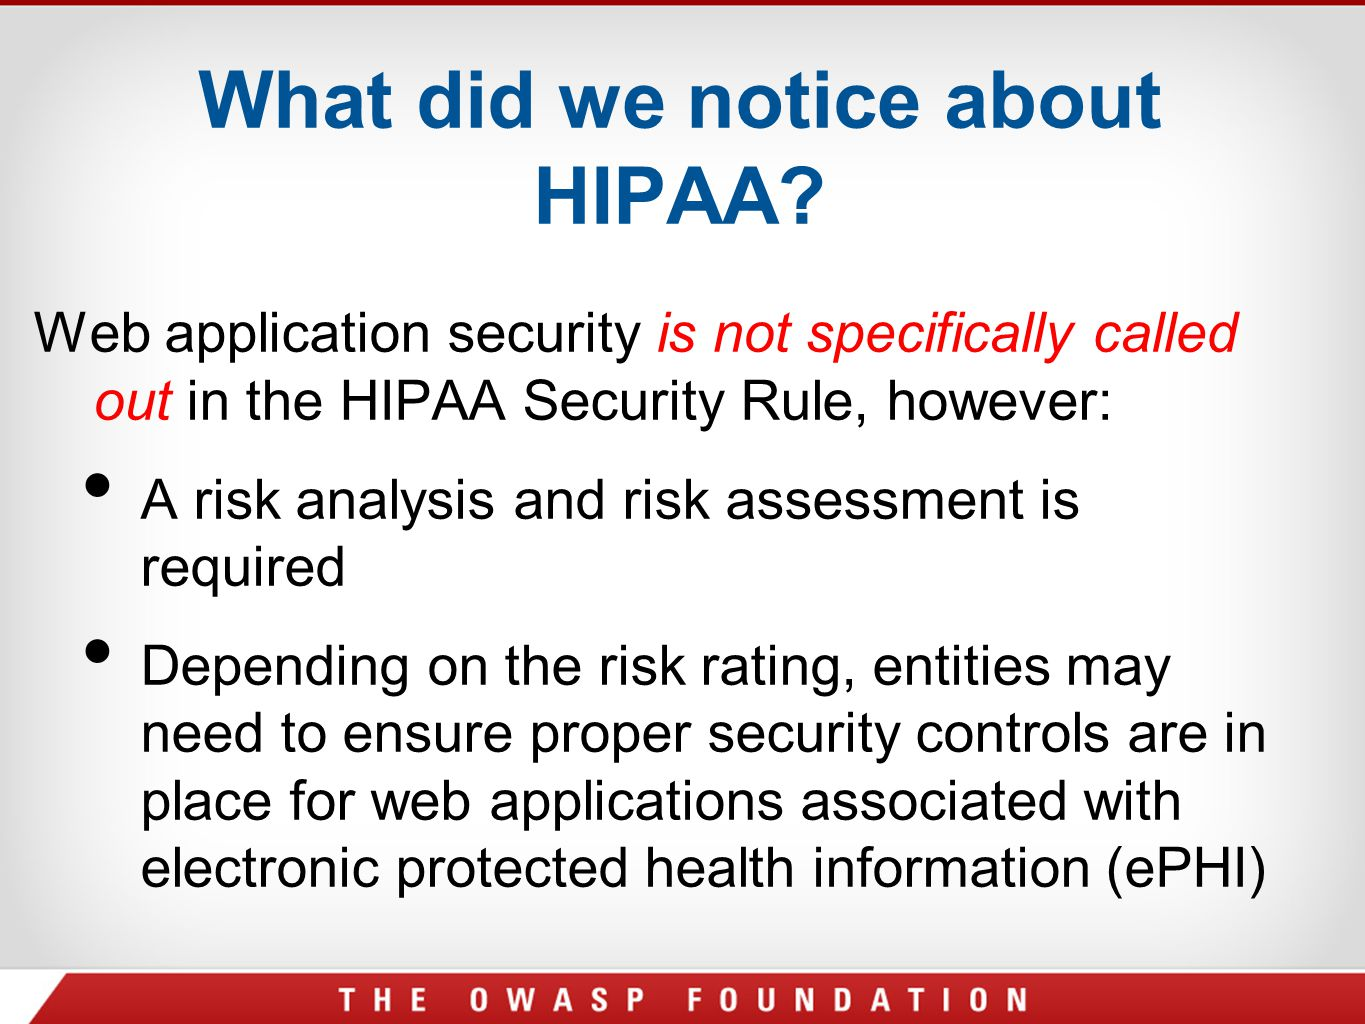 What did we notice about HIPAA